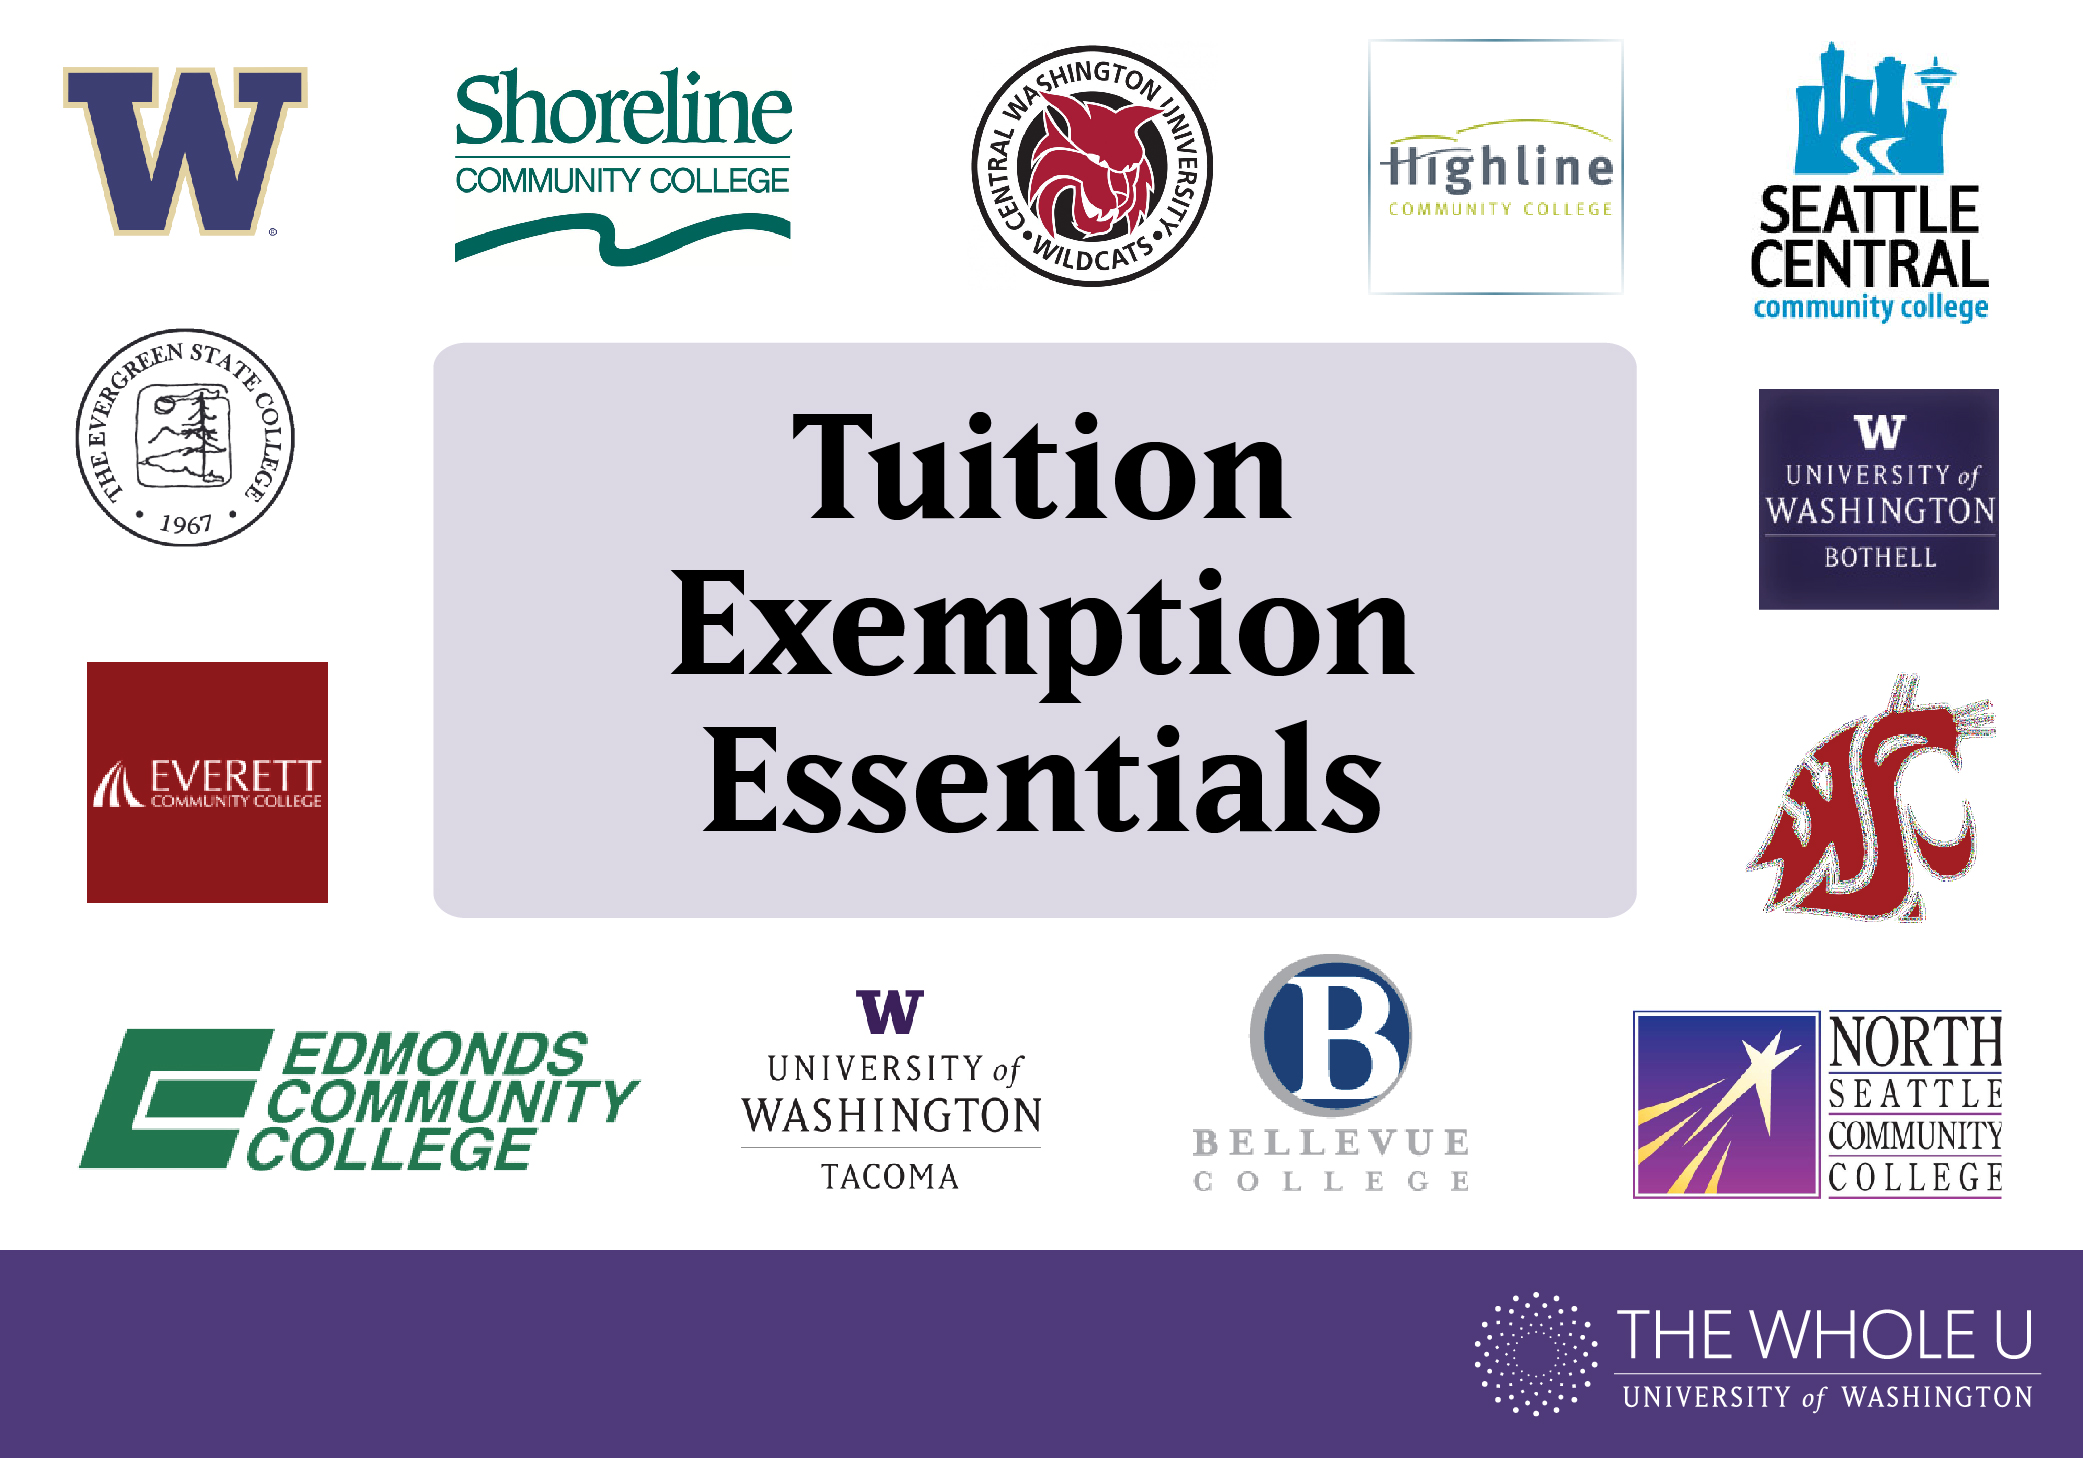 Tuition Exemption Essentials | The Whole U